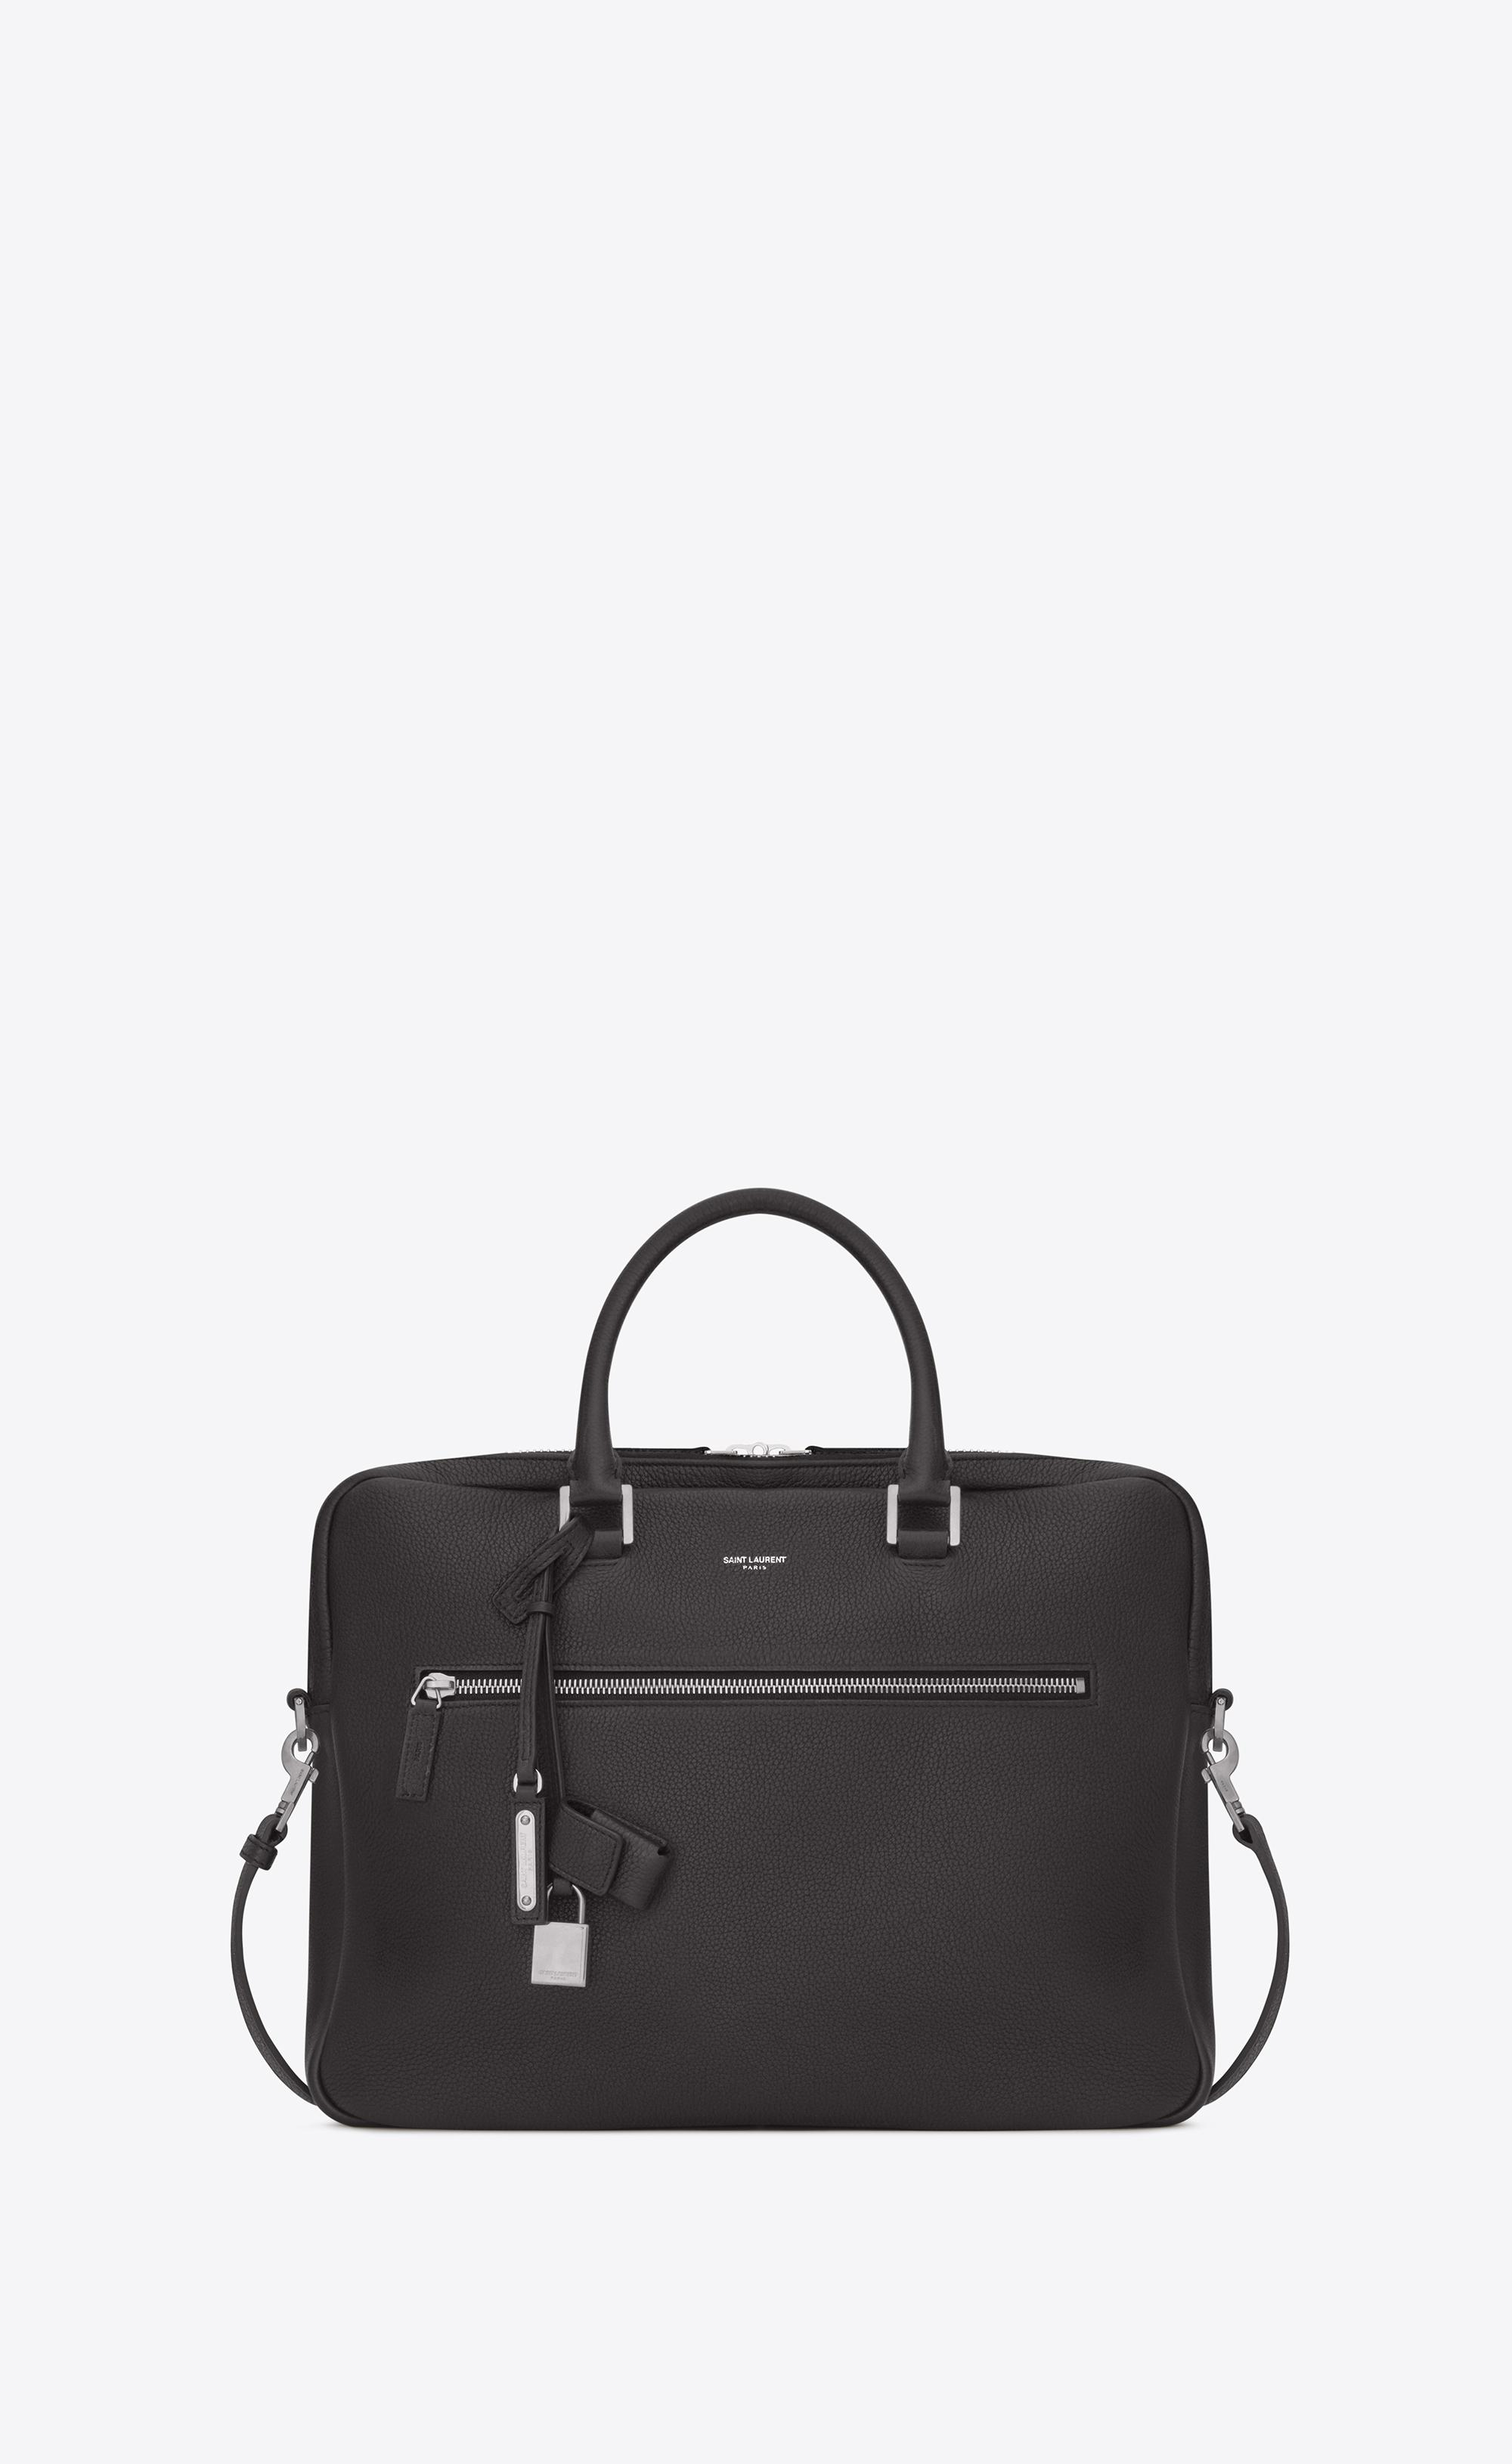 c6aa8081b4b Saint Laurent - Multicolor Sac De Jour Briefcase In Grained Leather for Men  - Lyst. View fullscreen